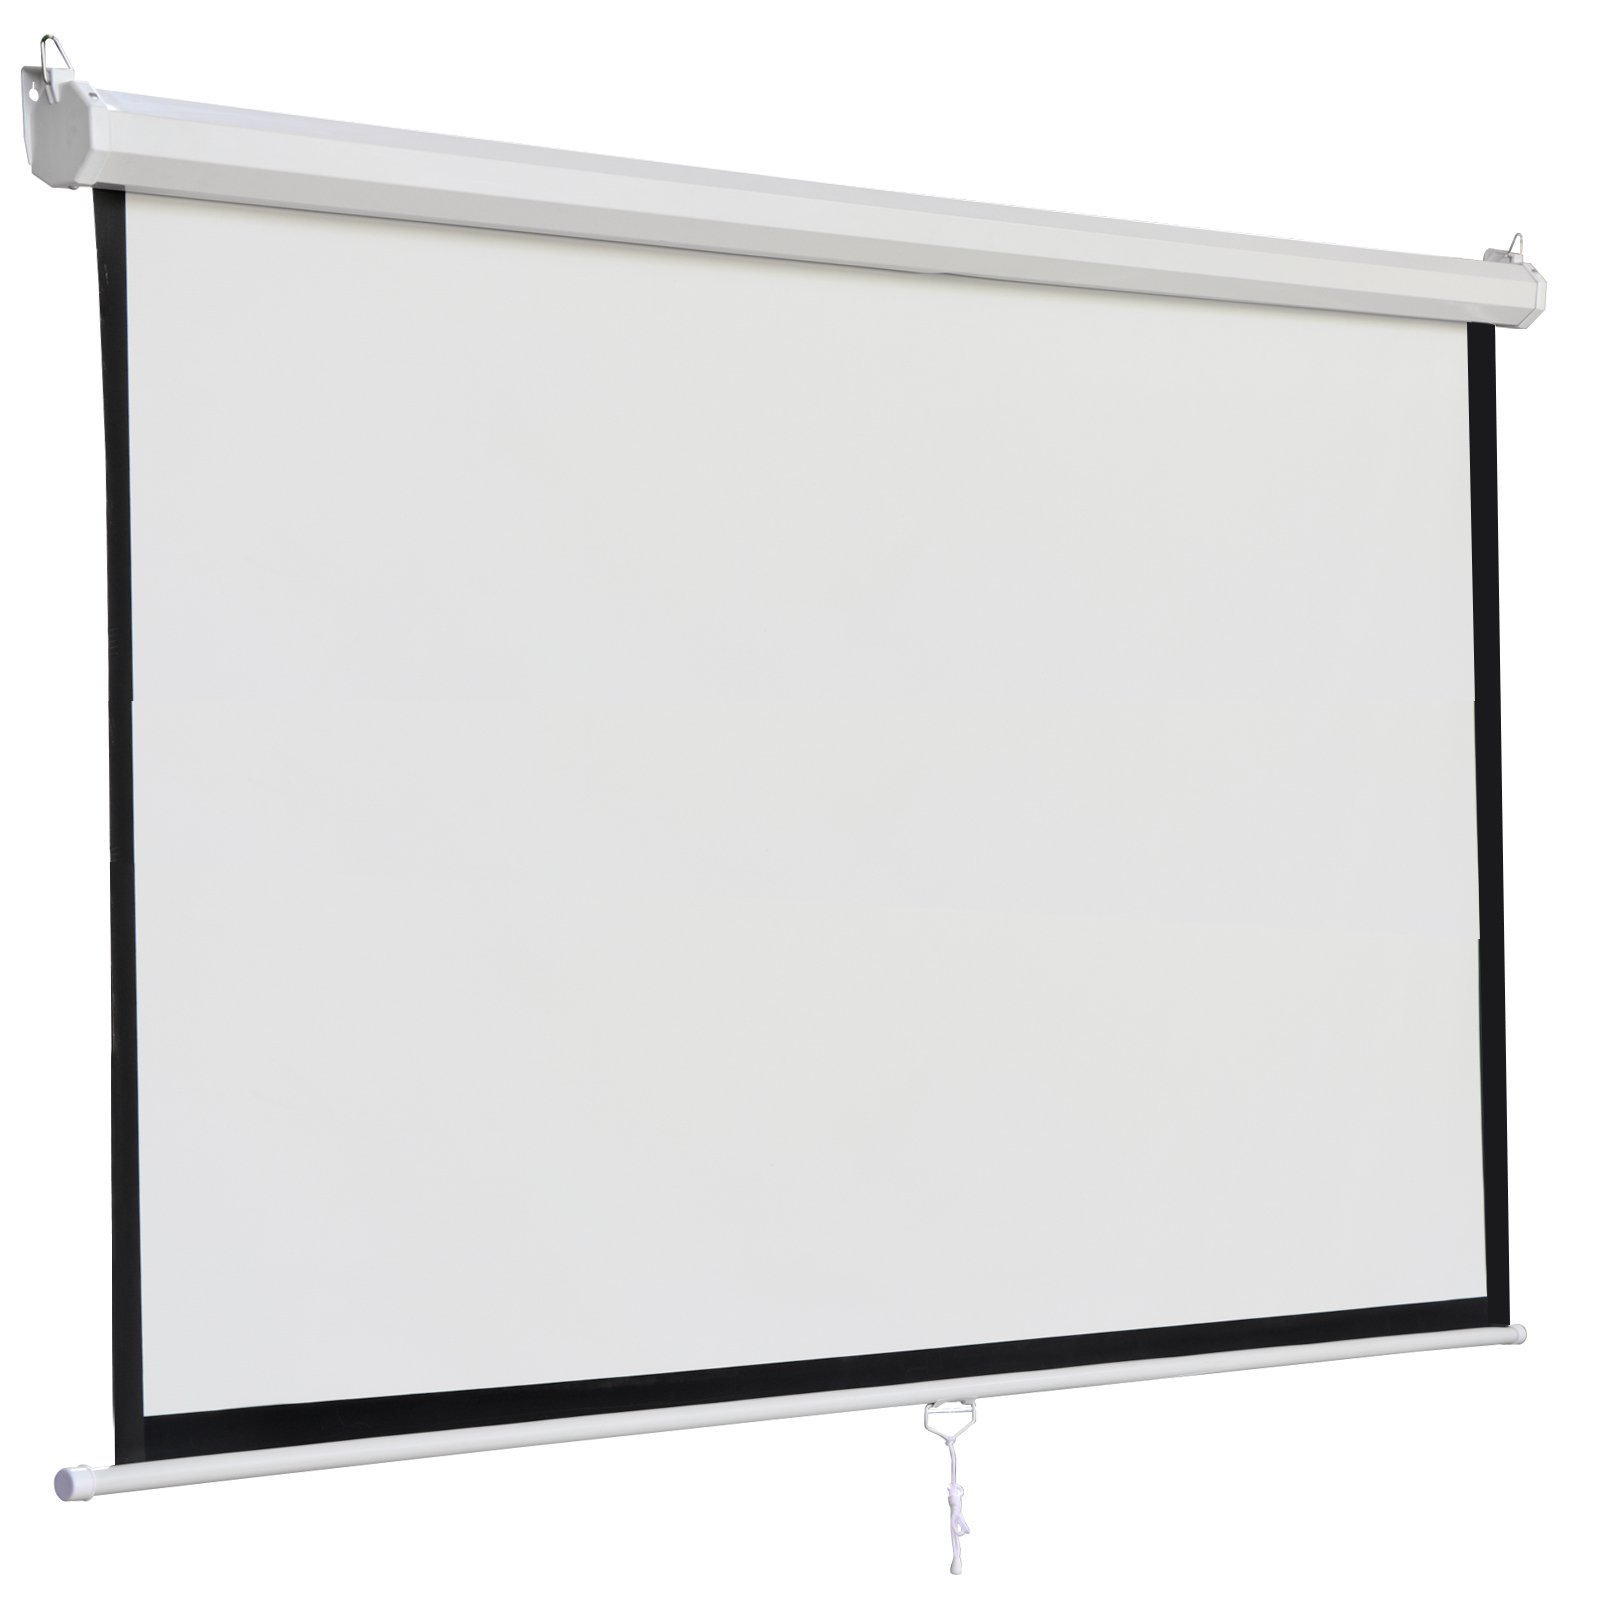 SUPER DEAL 120'' Projector Screen Projection Screen Manual Pull Down HD Screen 1:1 Format for Home Cinema Theater Presentation Education Outdoor Indoor Public Display by SUPER DEAL (Image #3)